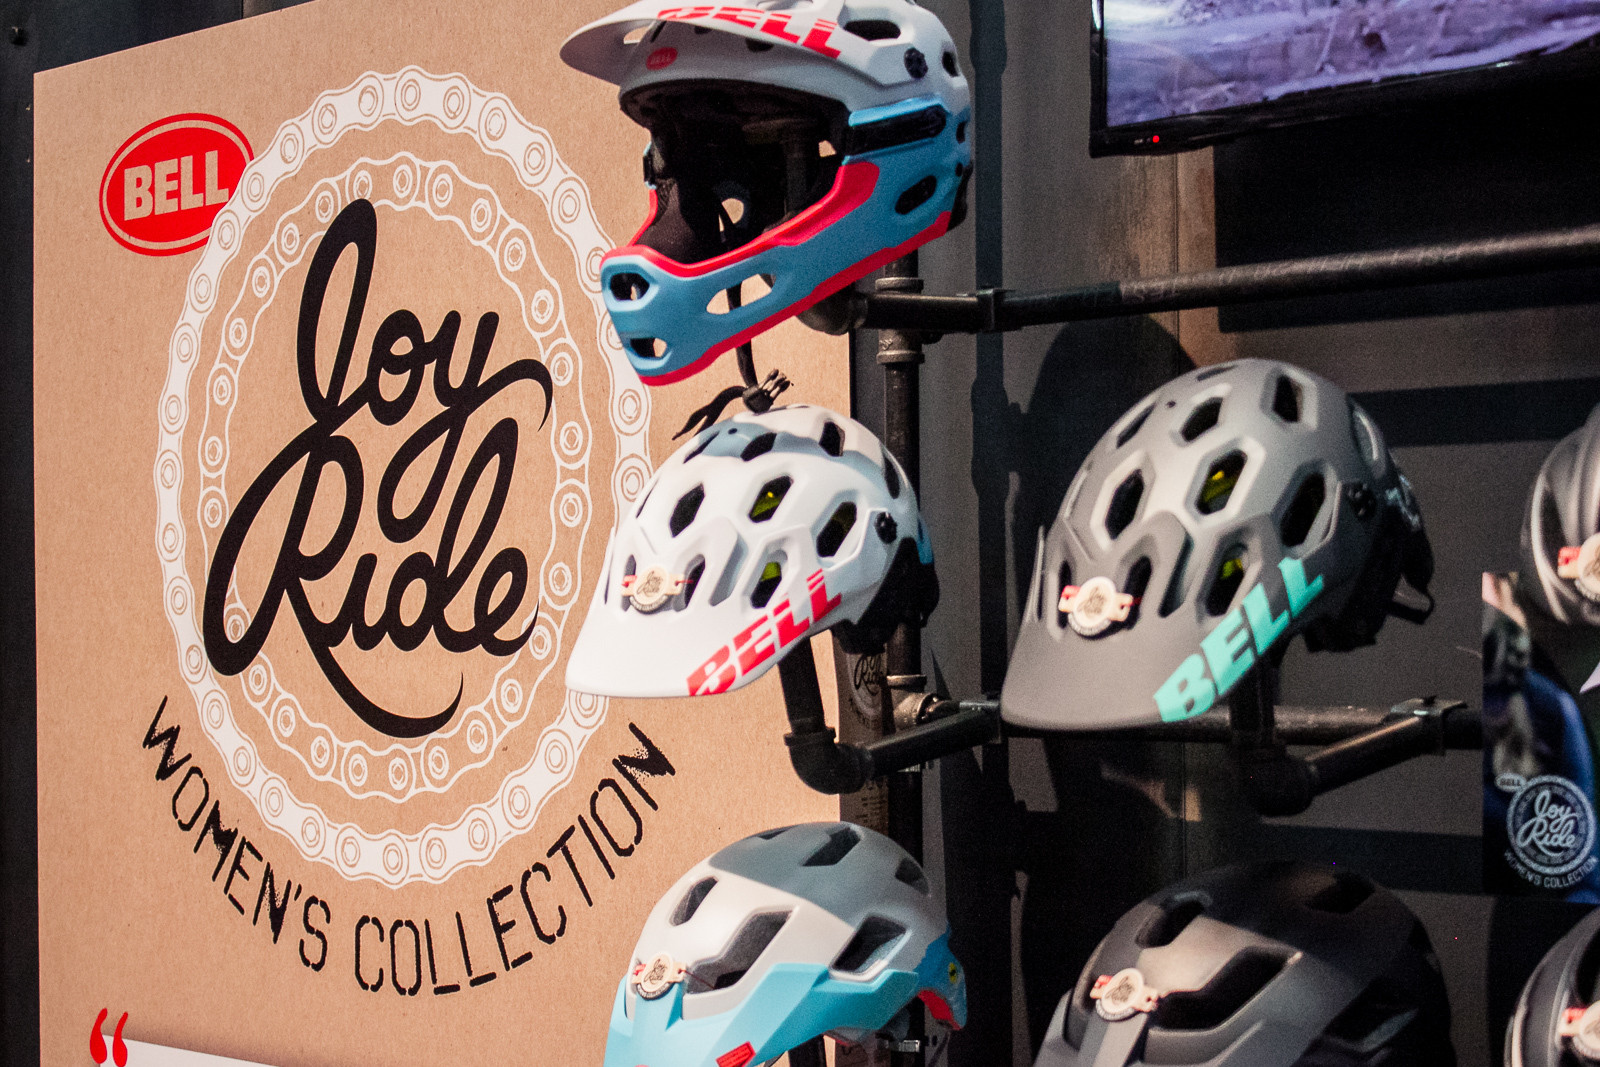 Bell Helmets Joy Ride Women's Collection - 2016 Women's Bikes and Gear at Interbike - Mountain Biking Pictures - Vital MTB